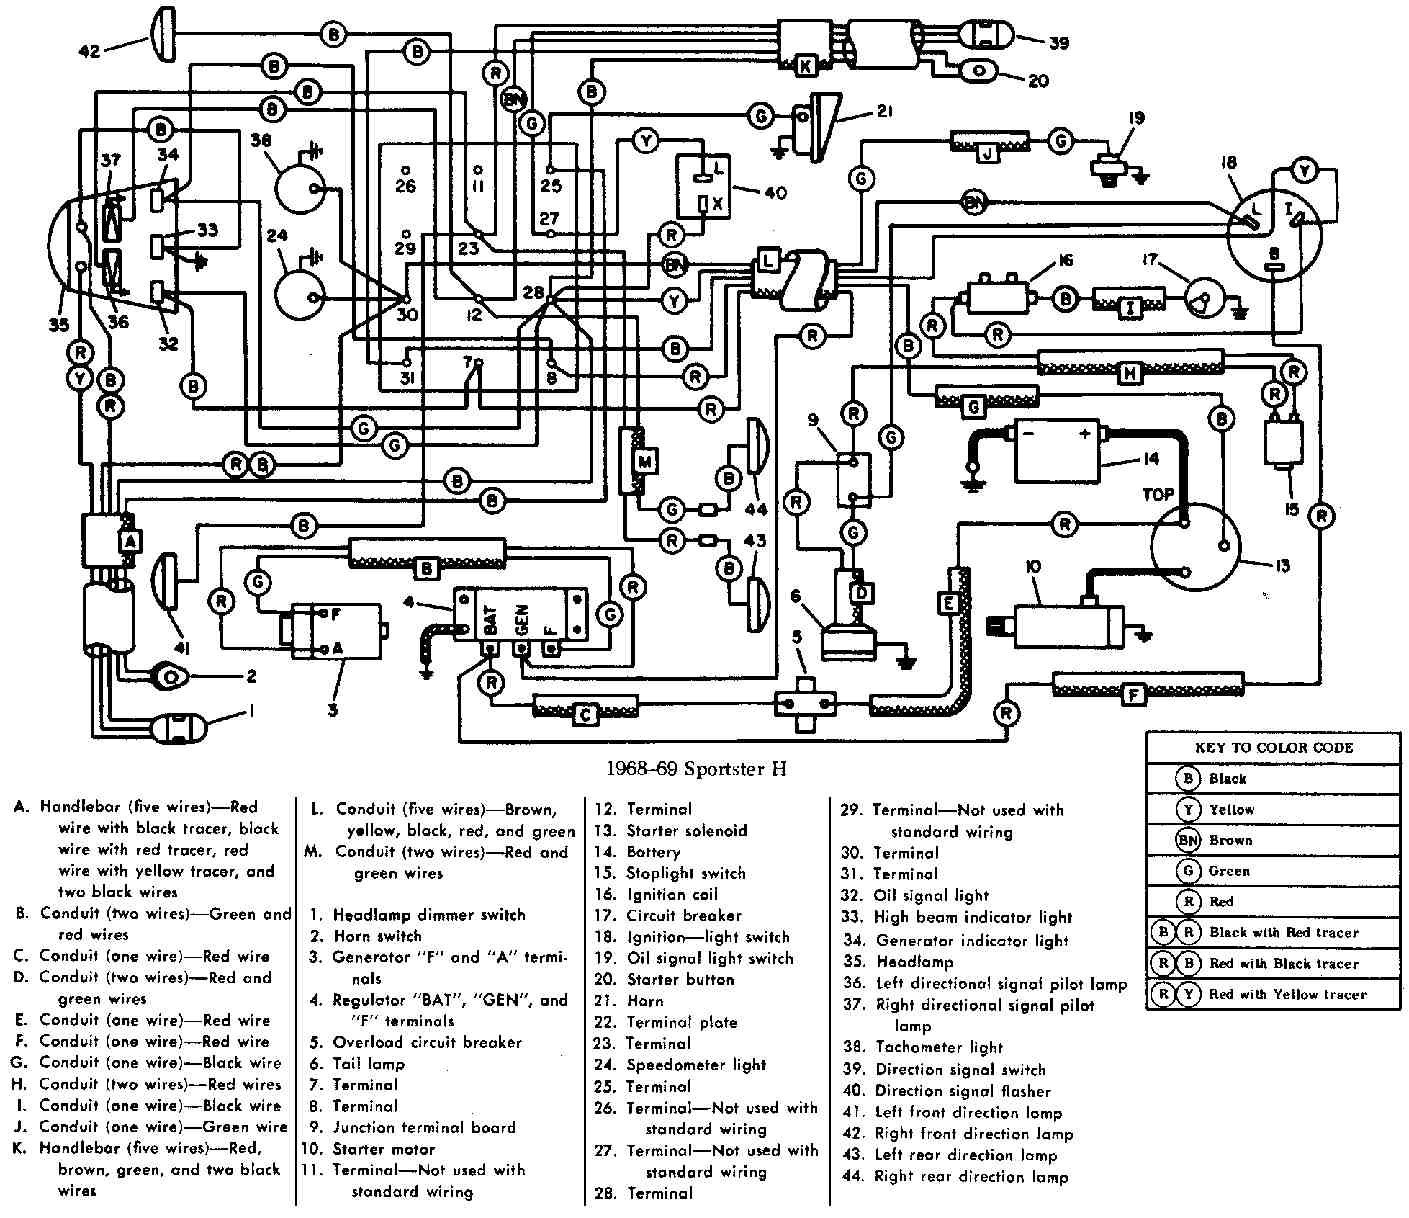 hight resolution of 2011 harley dyna glide wiring diagrams harley davidson wiring rh scoala co 2011 harley davidson road